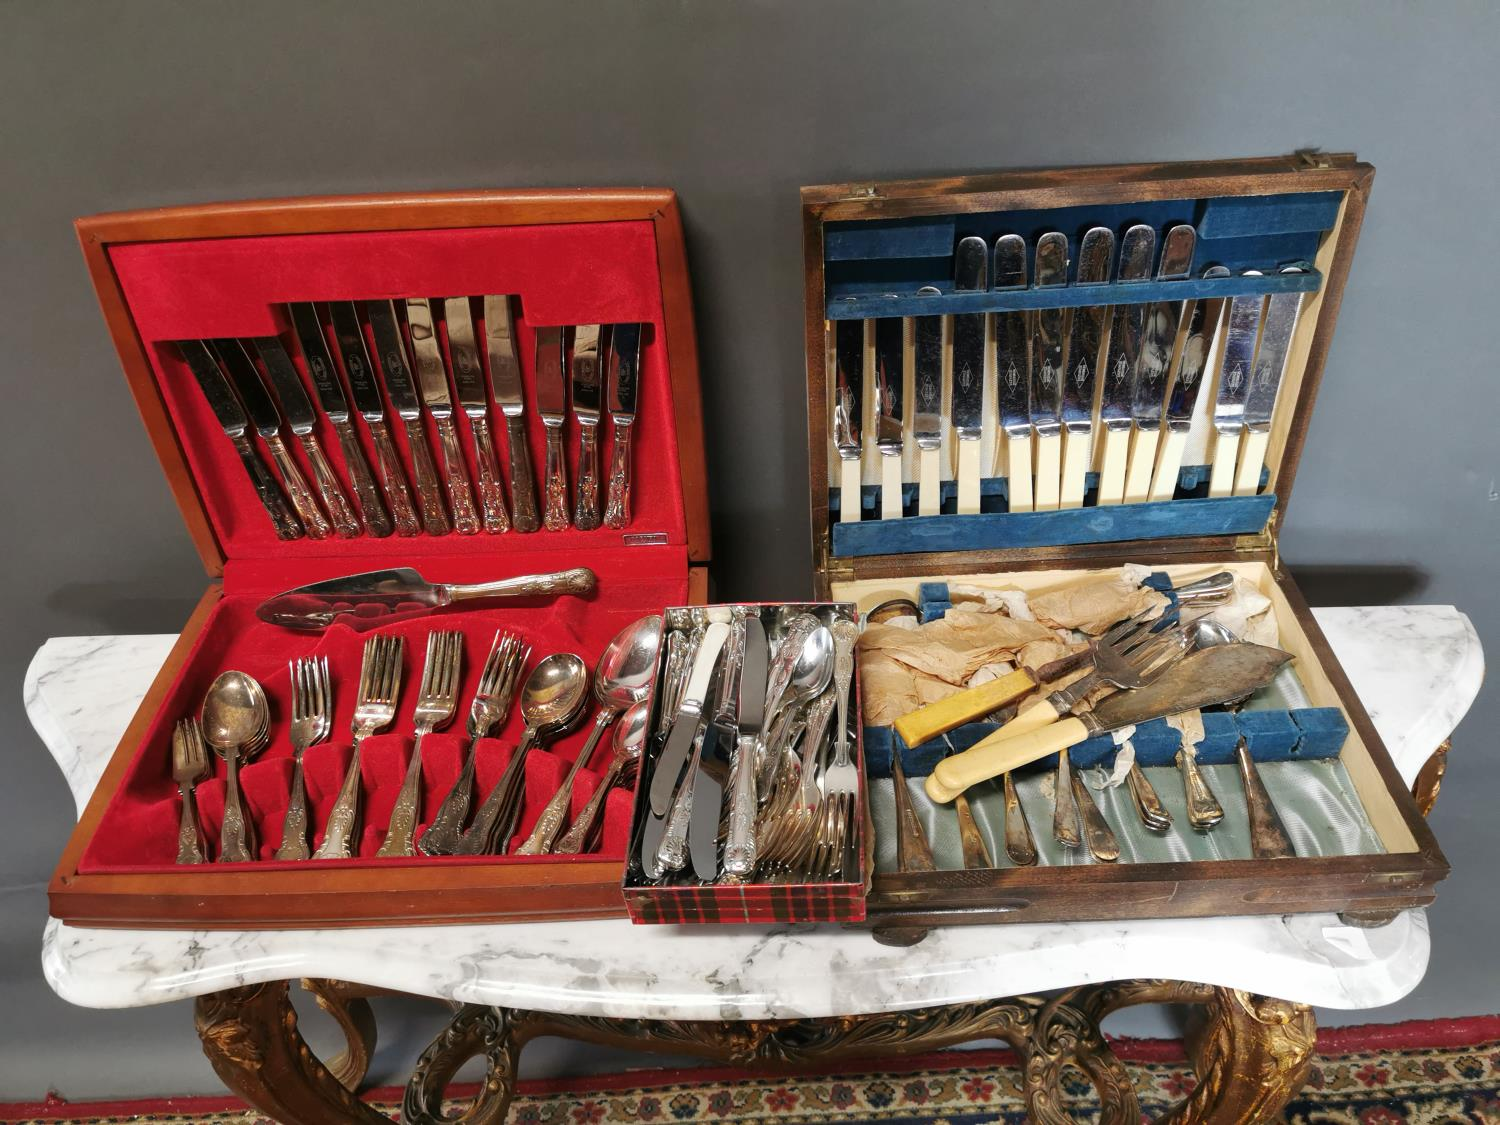 Two sets of Kings pattern cutlery and another set